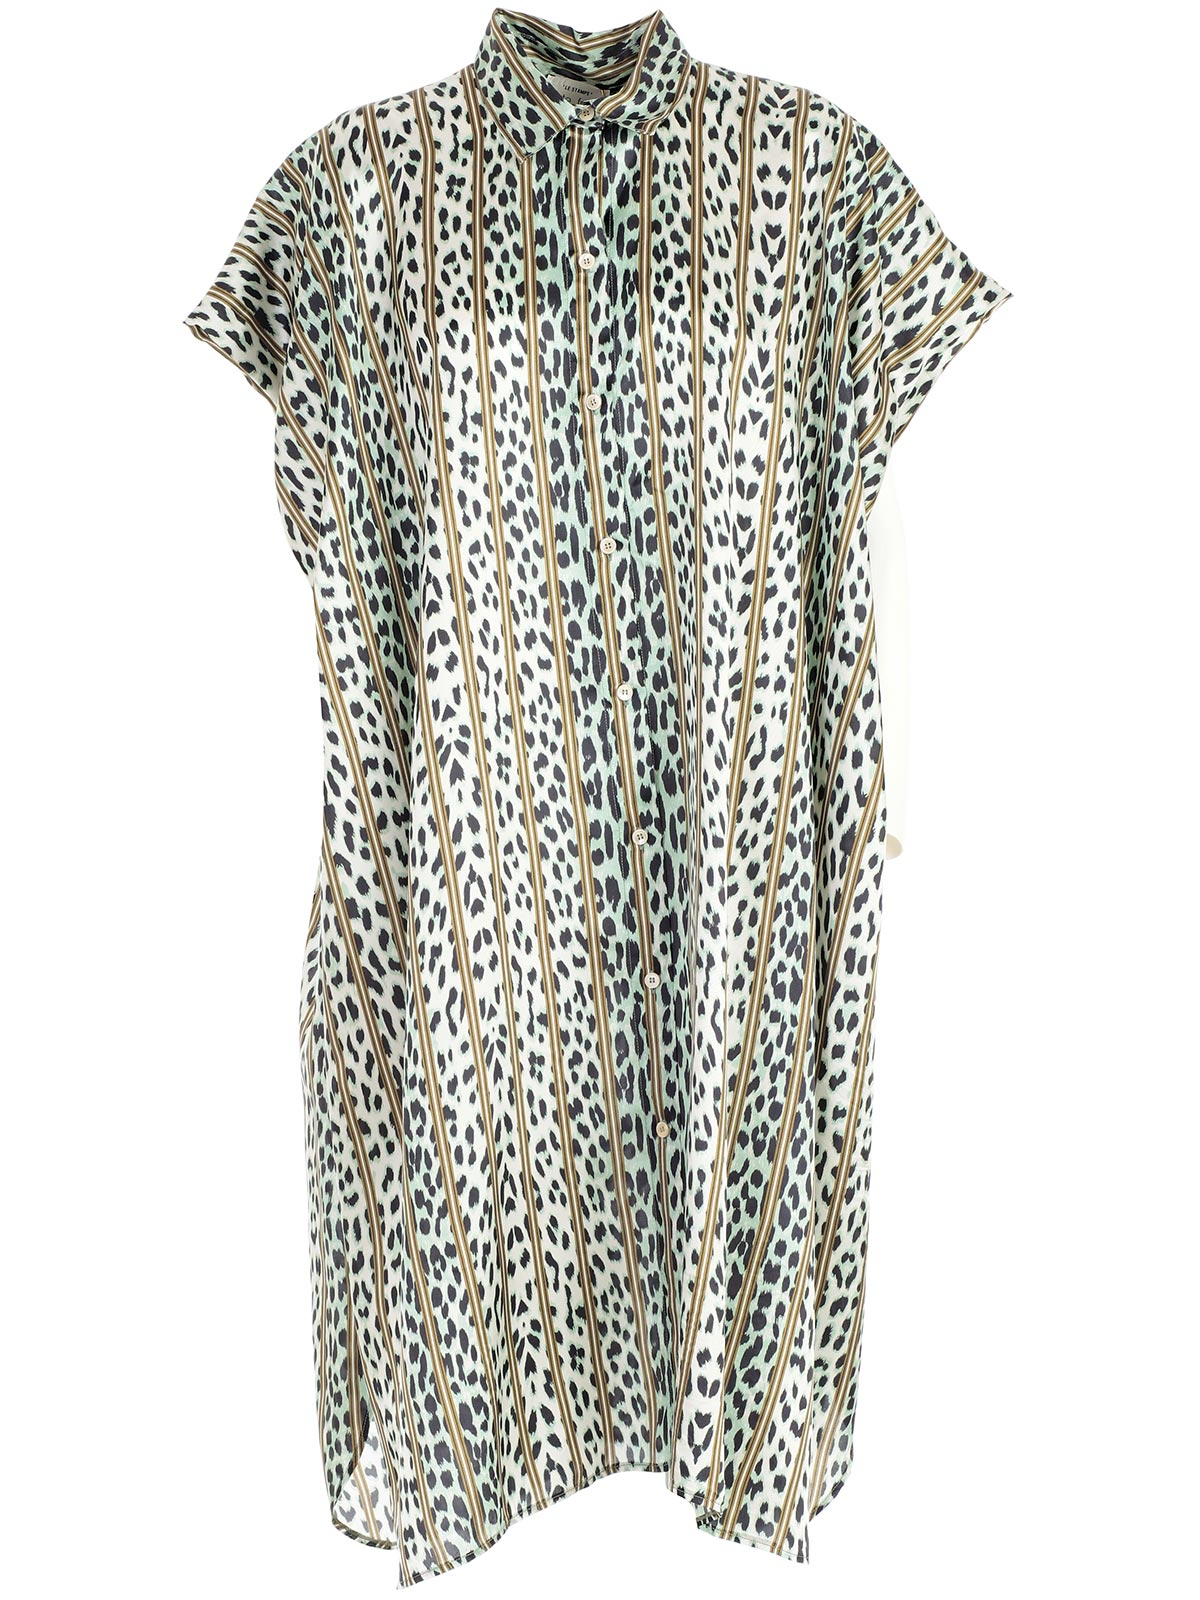 Picture of Forte Forte Dress